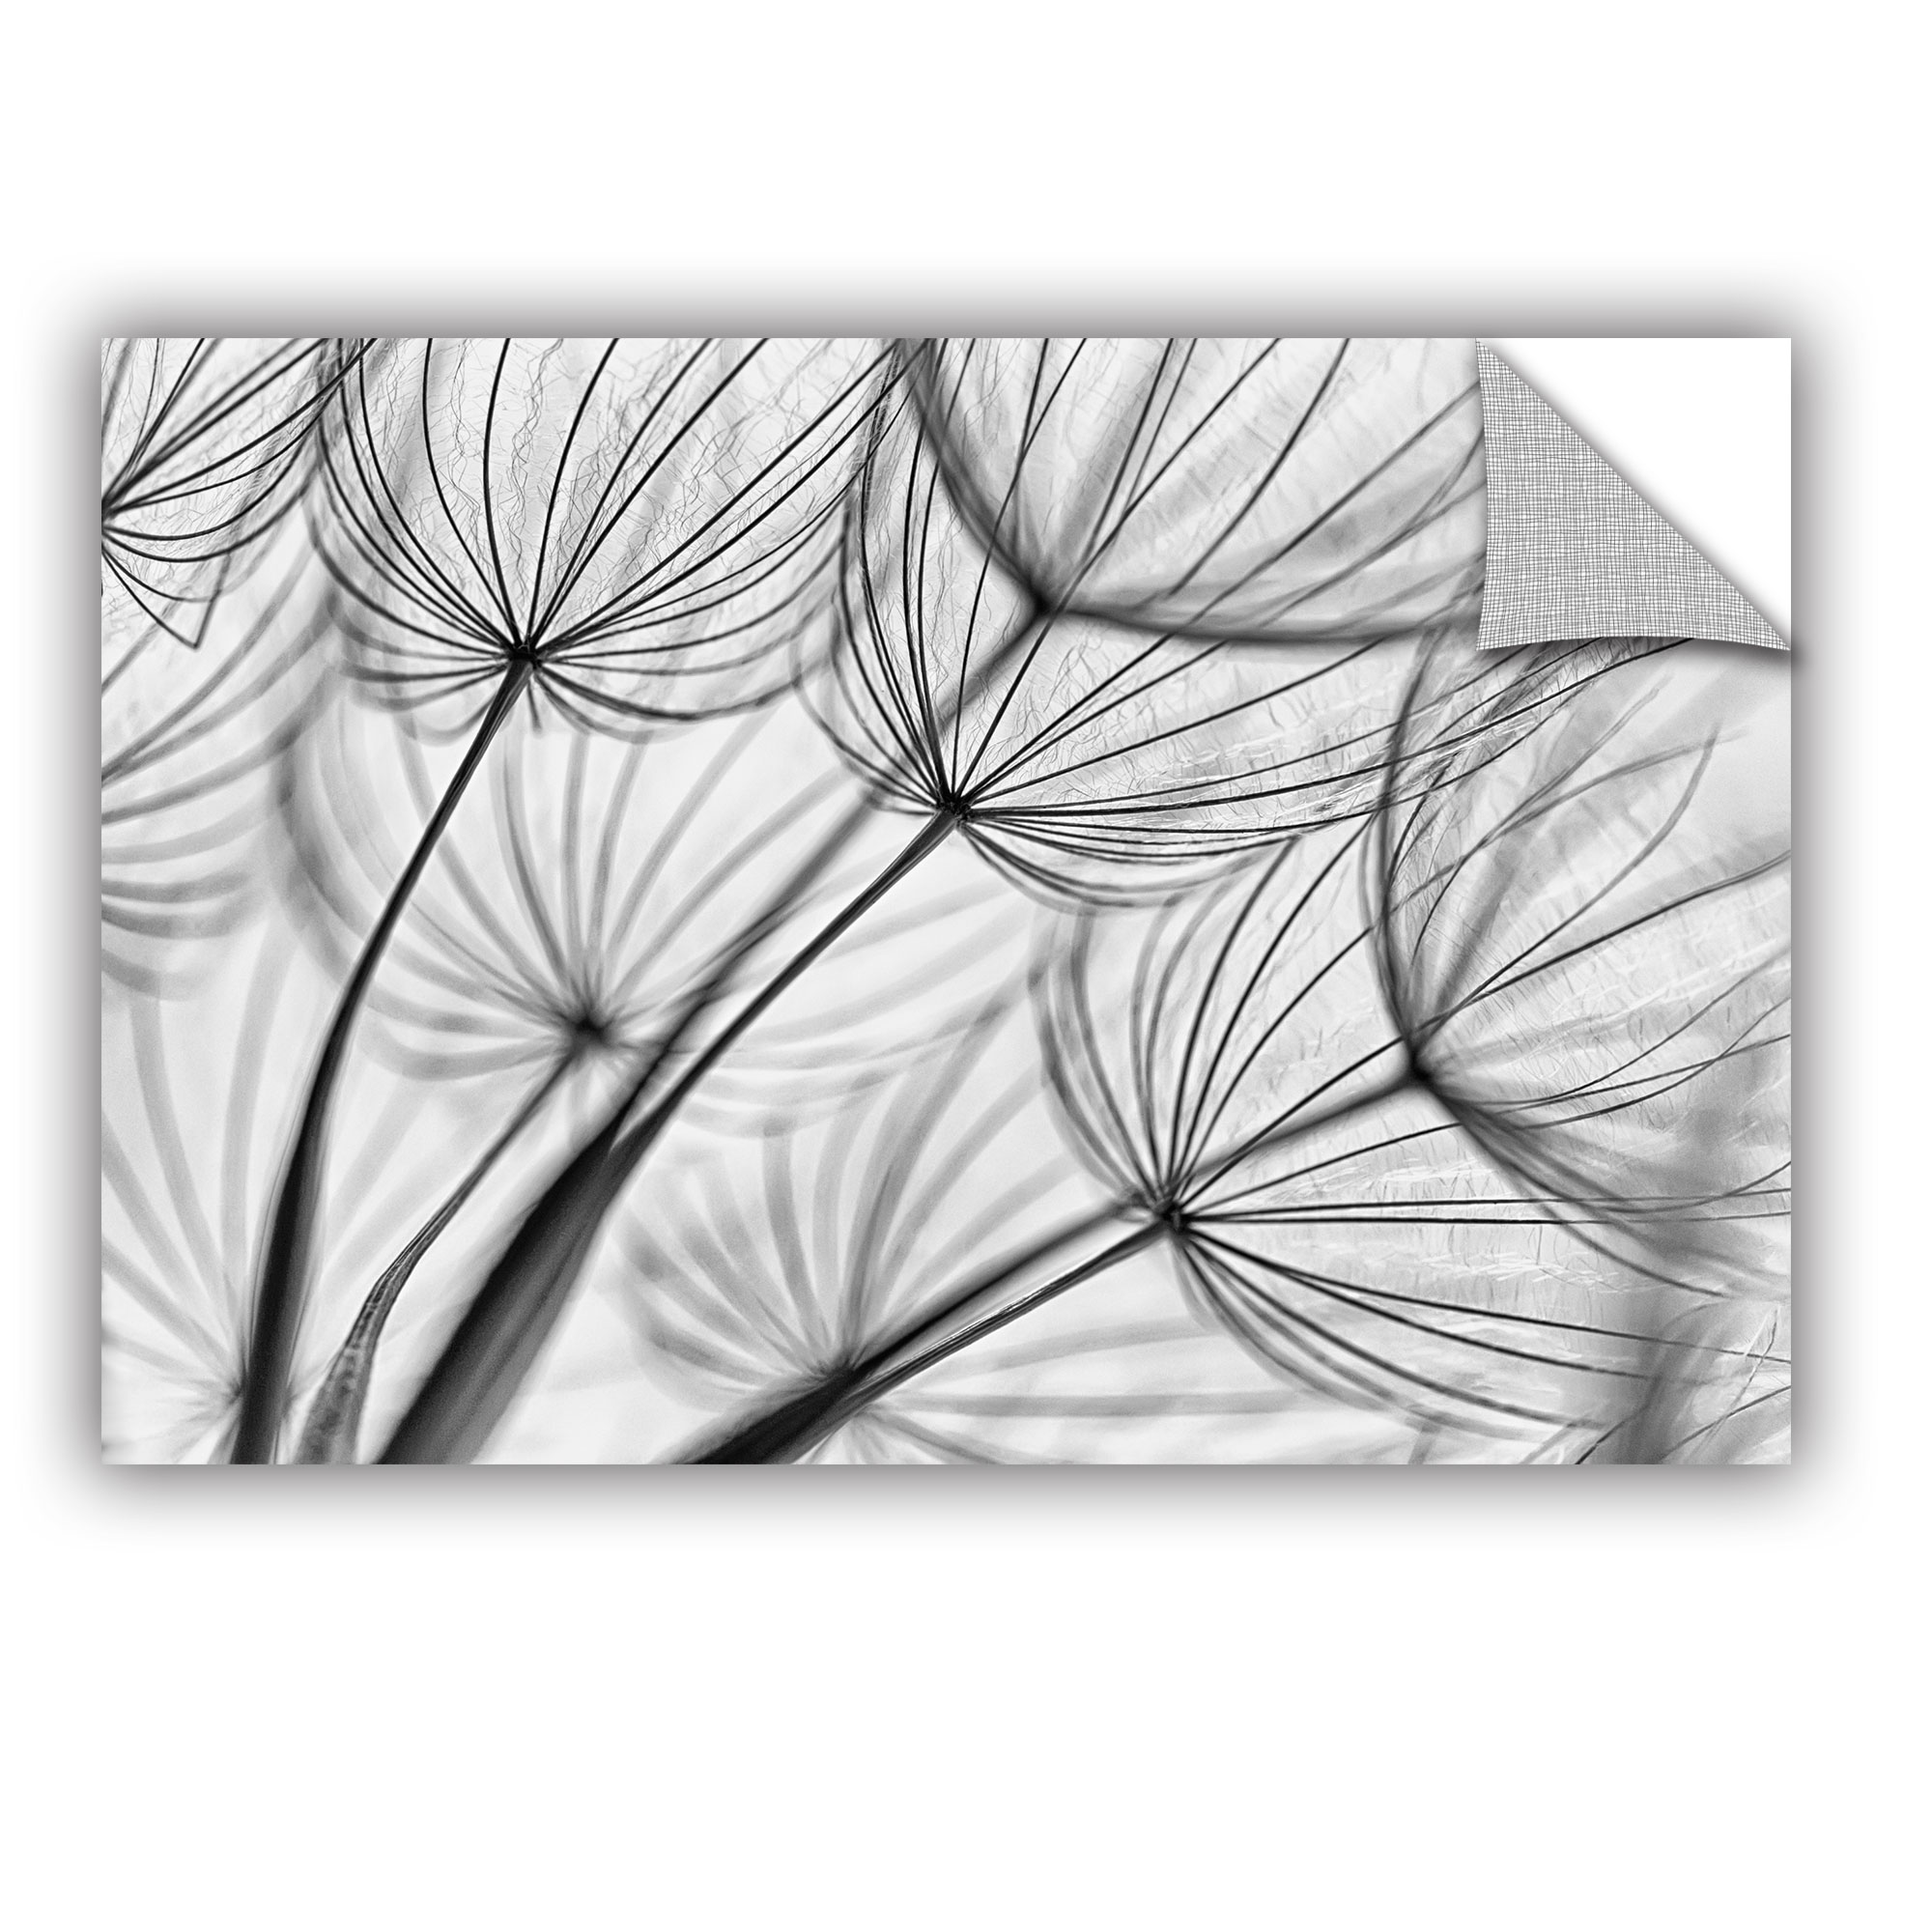 'Parachute Seed II' Removable Wall Art Mural